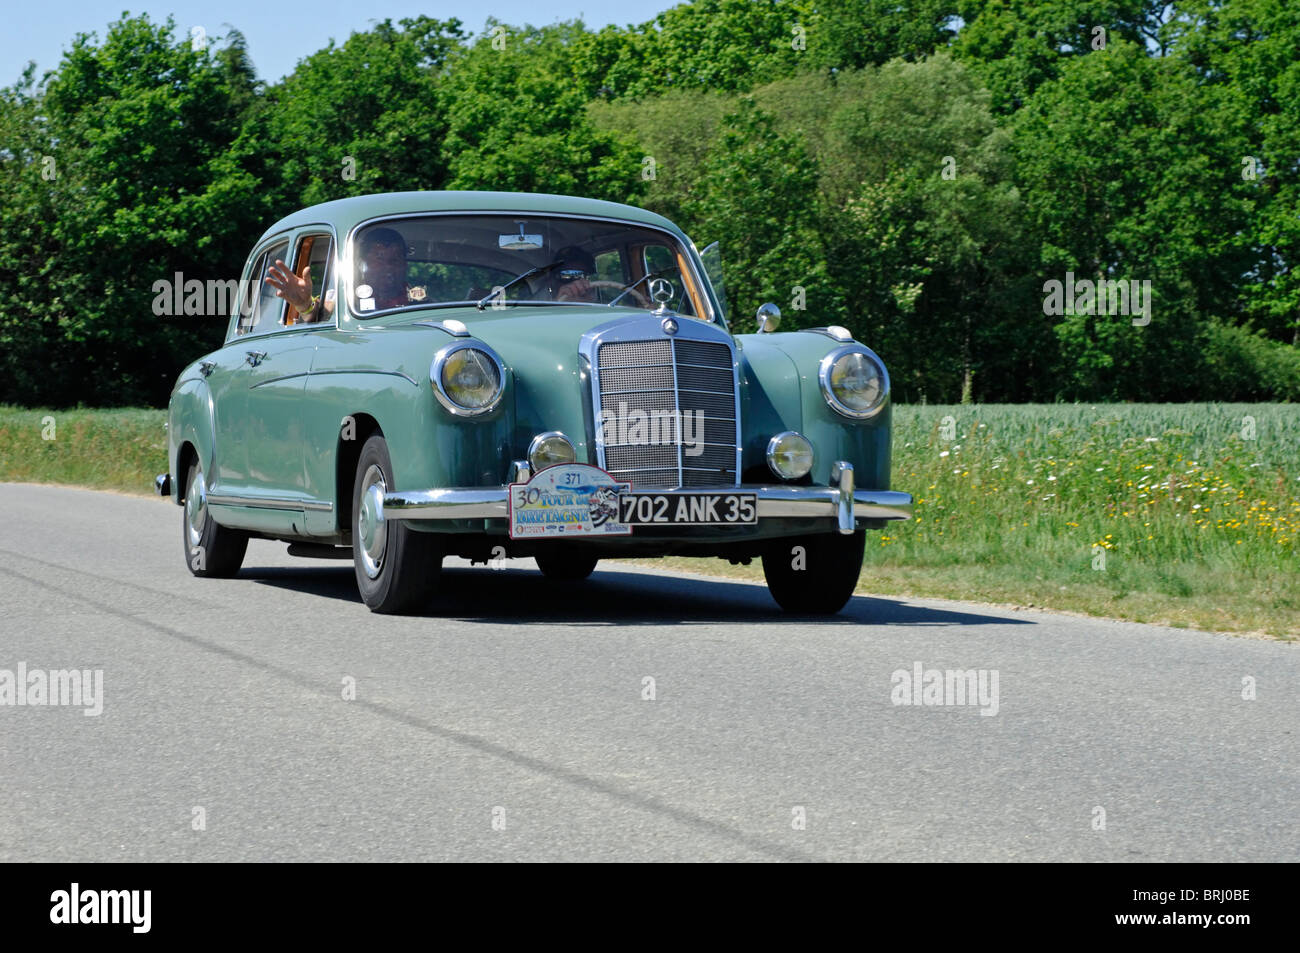 mercedes benz 220s ponton 1958 in the tour de bretagne classic car stock photo royalty free. Black Bedroom Furniture Sets. Home Design Ideas